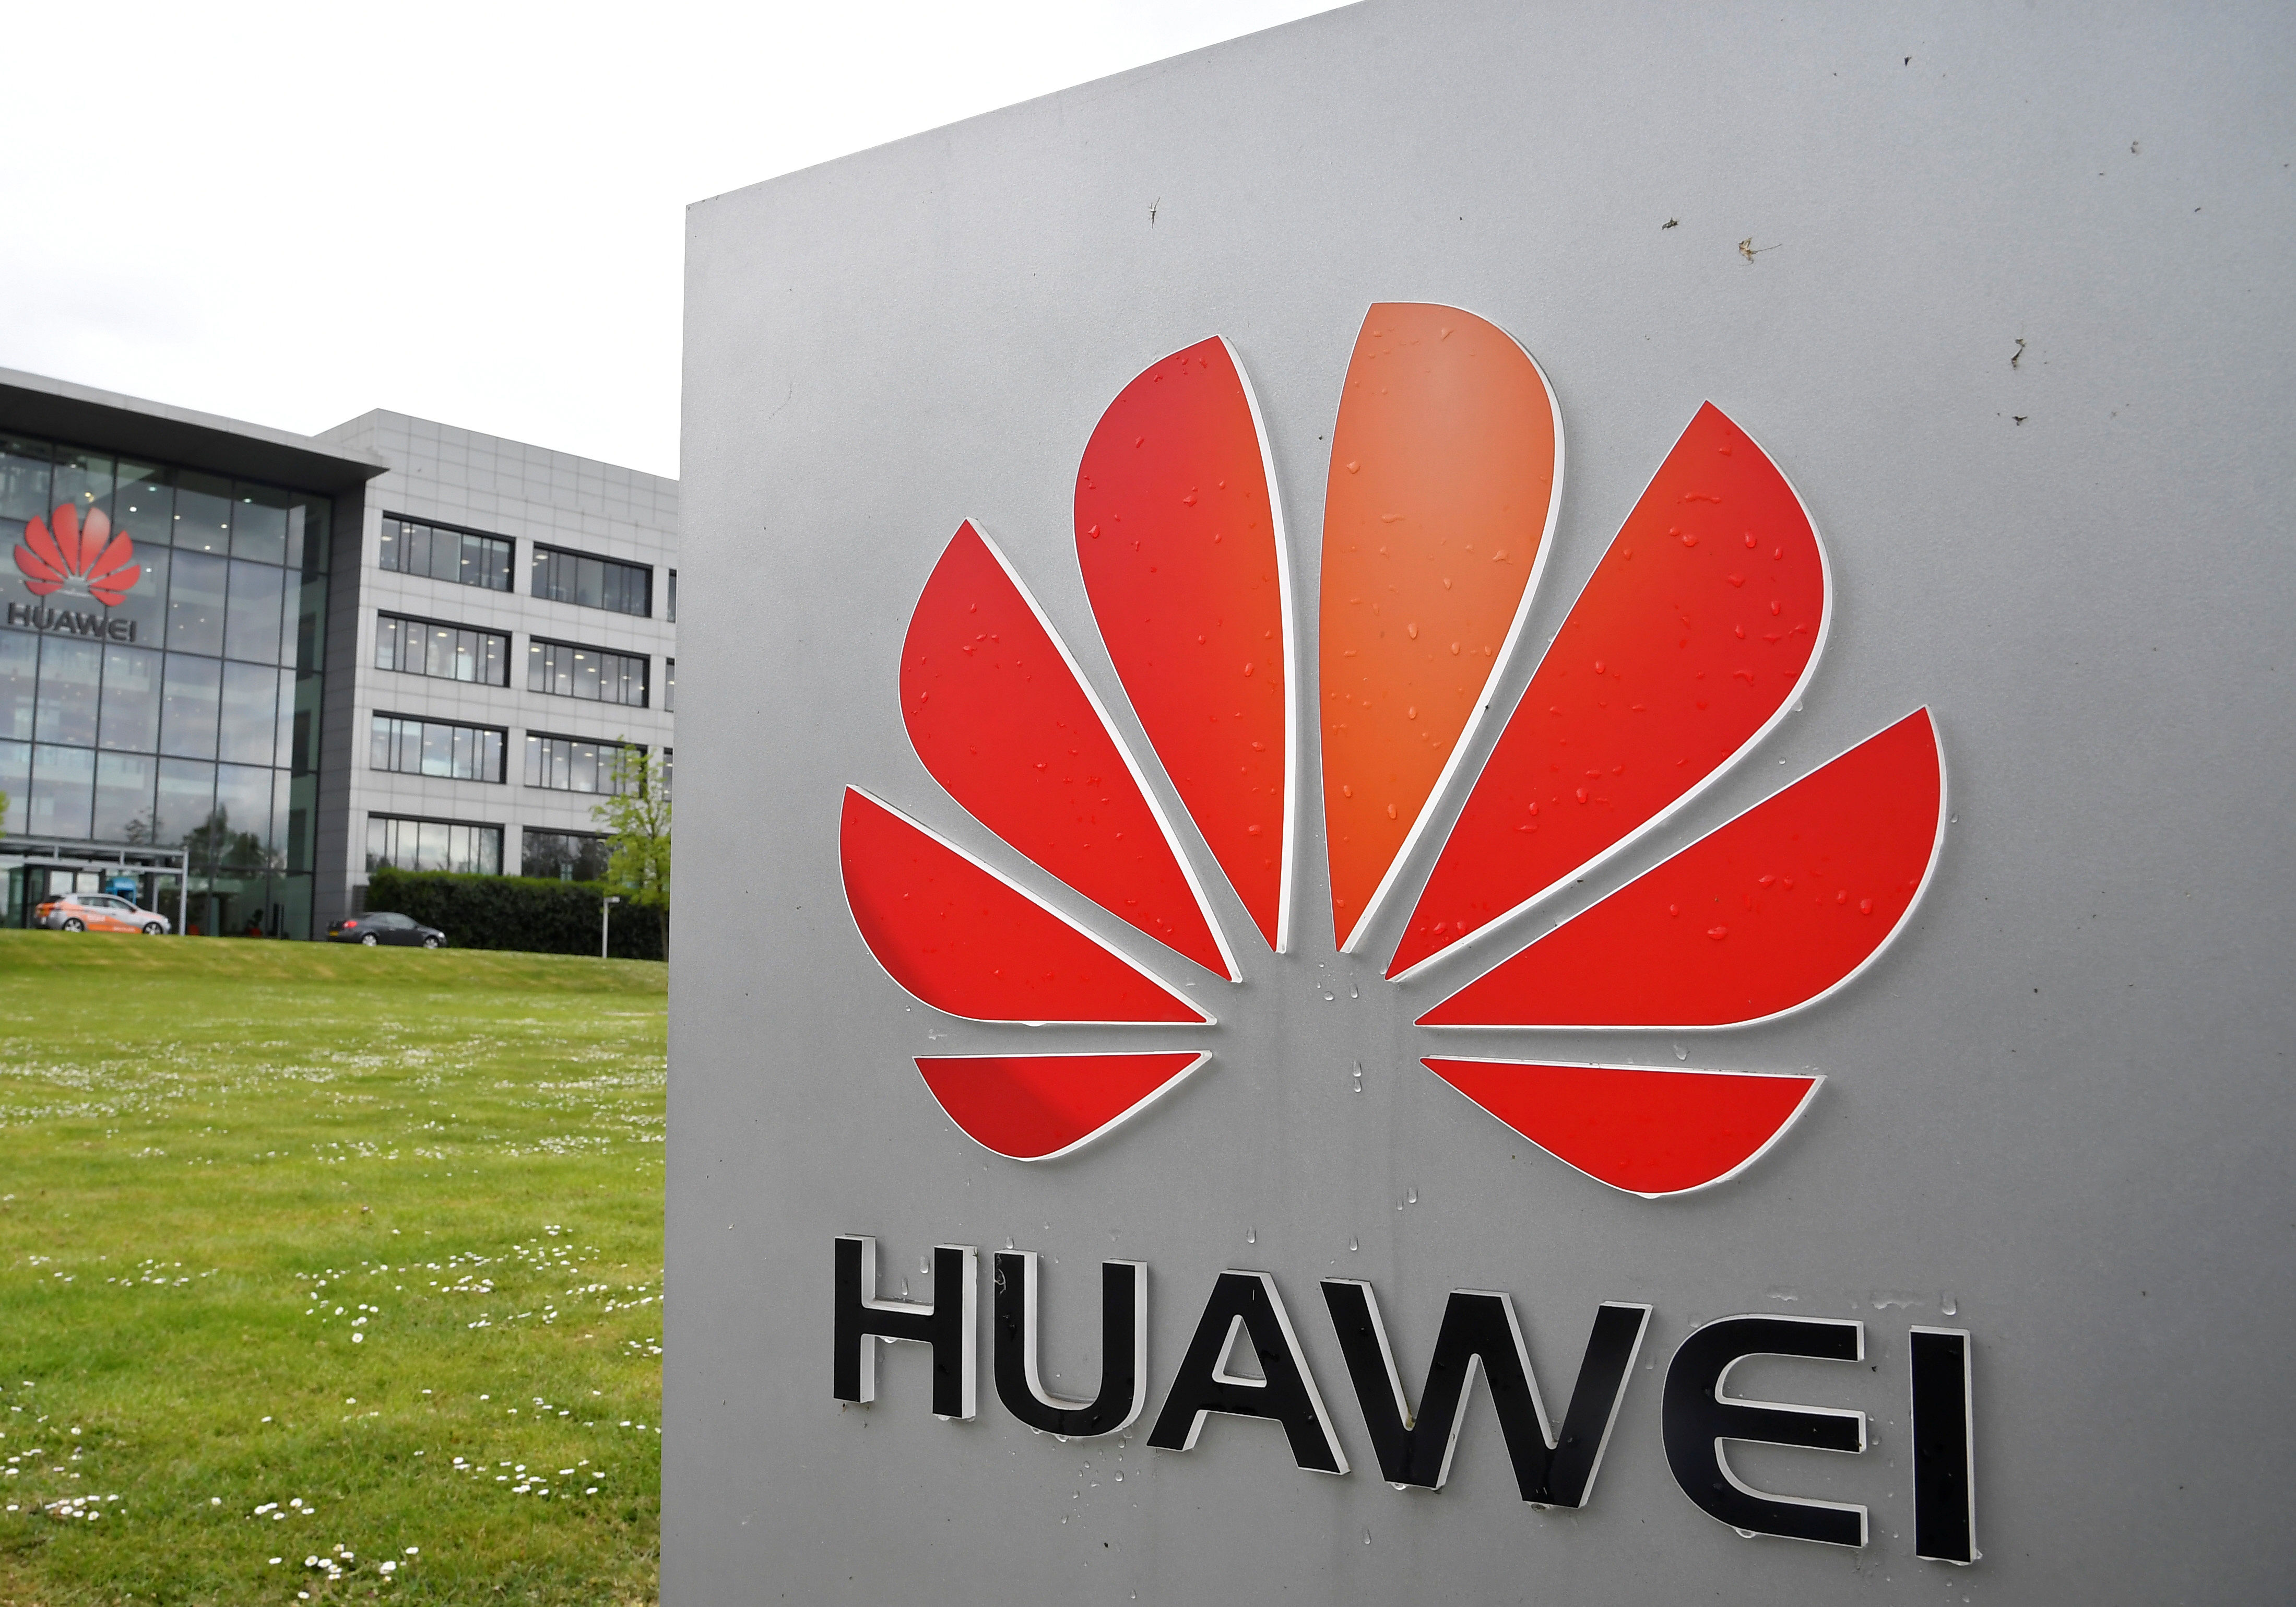 United Kingdom  warned banning Huawei will delay 5G rollout and cost billions